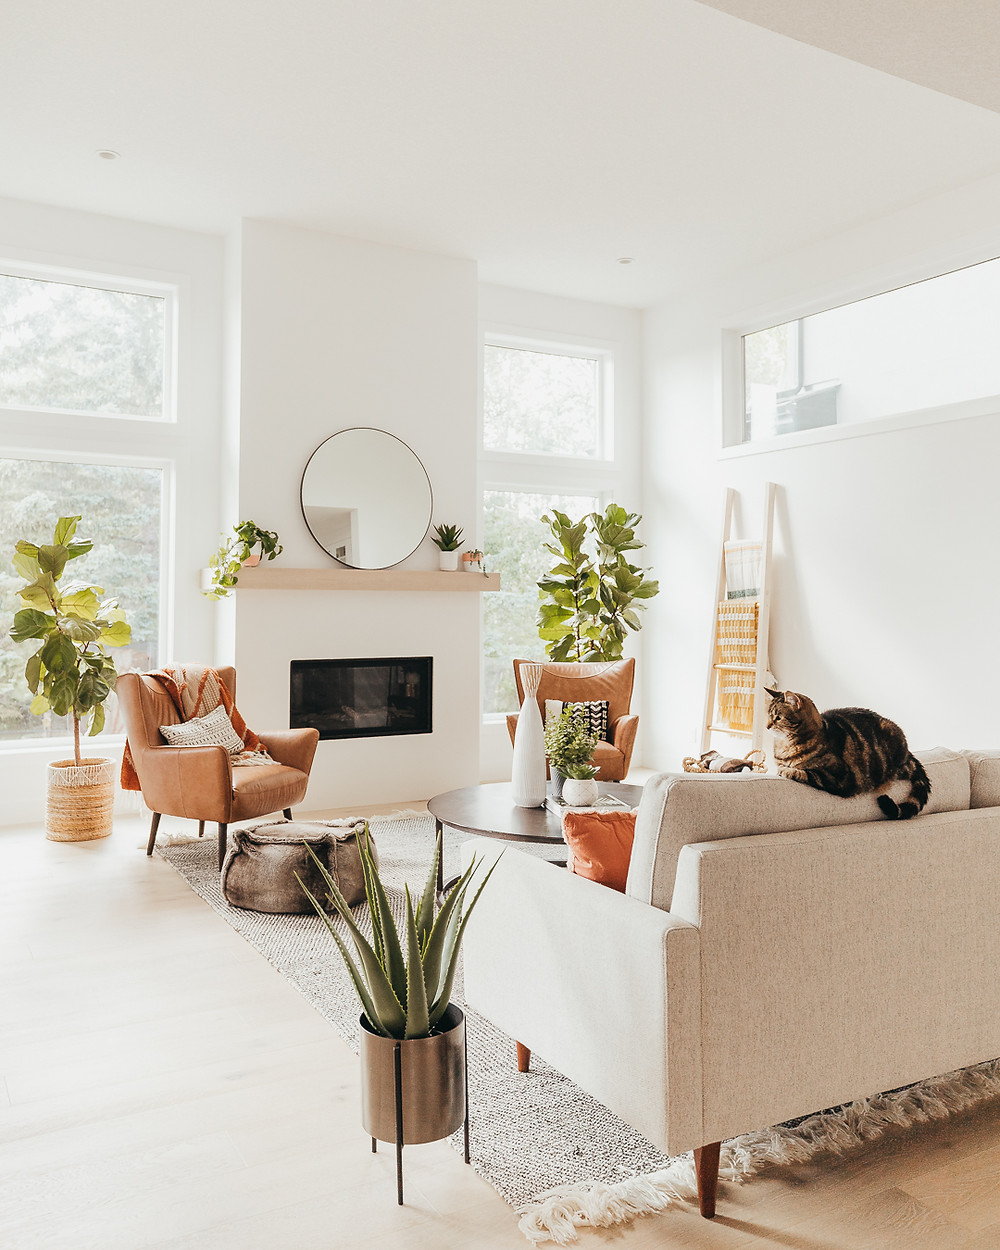 Natural light and windows blanket ladder against the wall with throw wood mantle with round mirror and plants fiddle leaf fig in baskets cream sofa with cat on the back two brown leather armchairs aloe plant in gold pot on floor